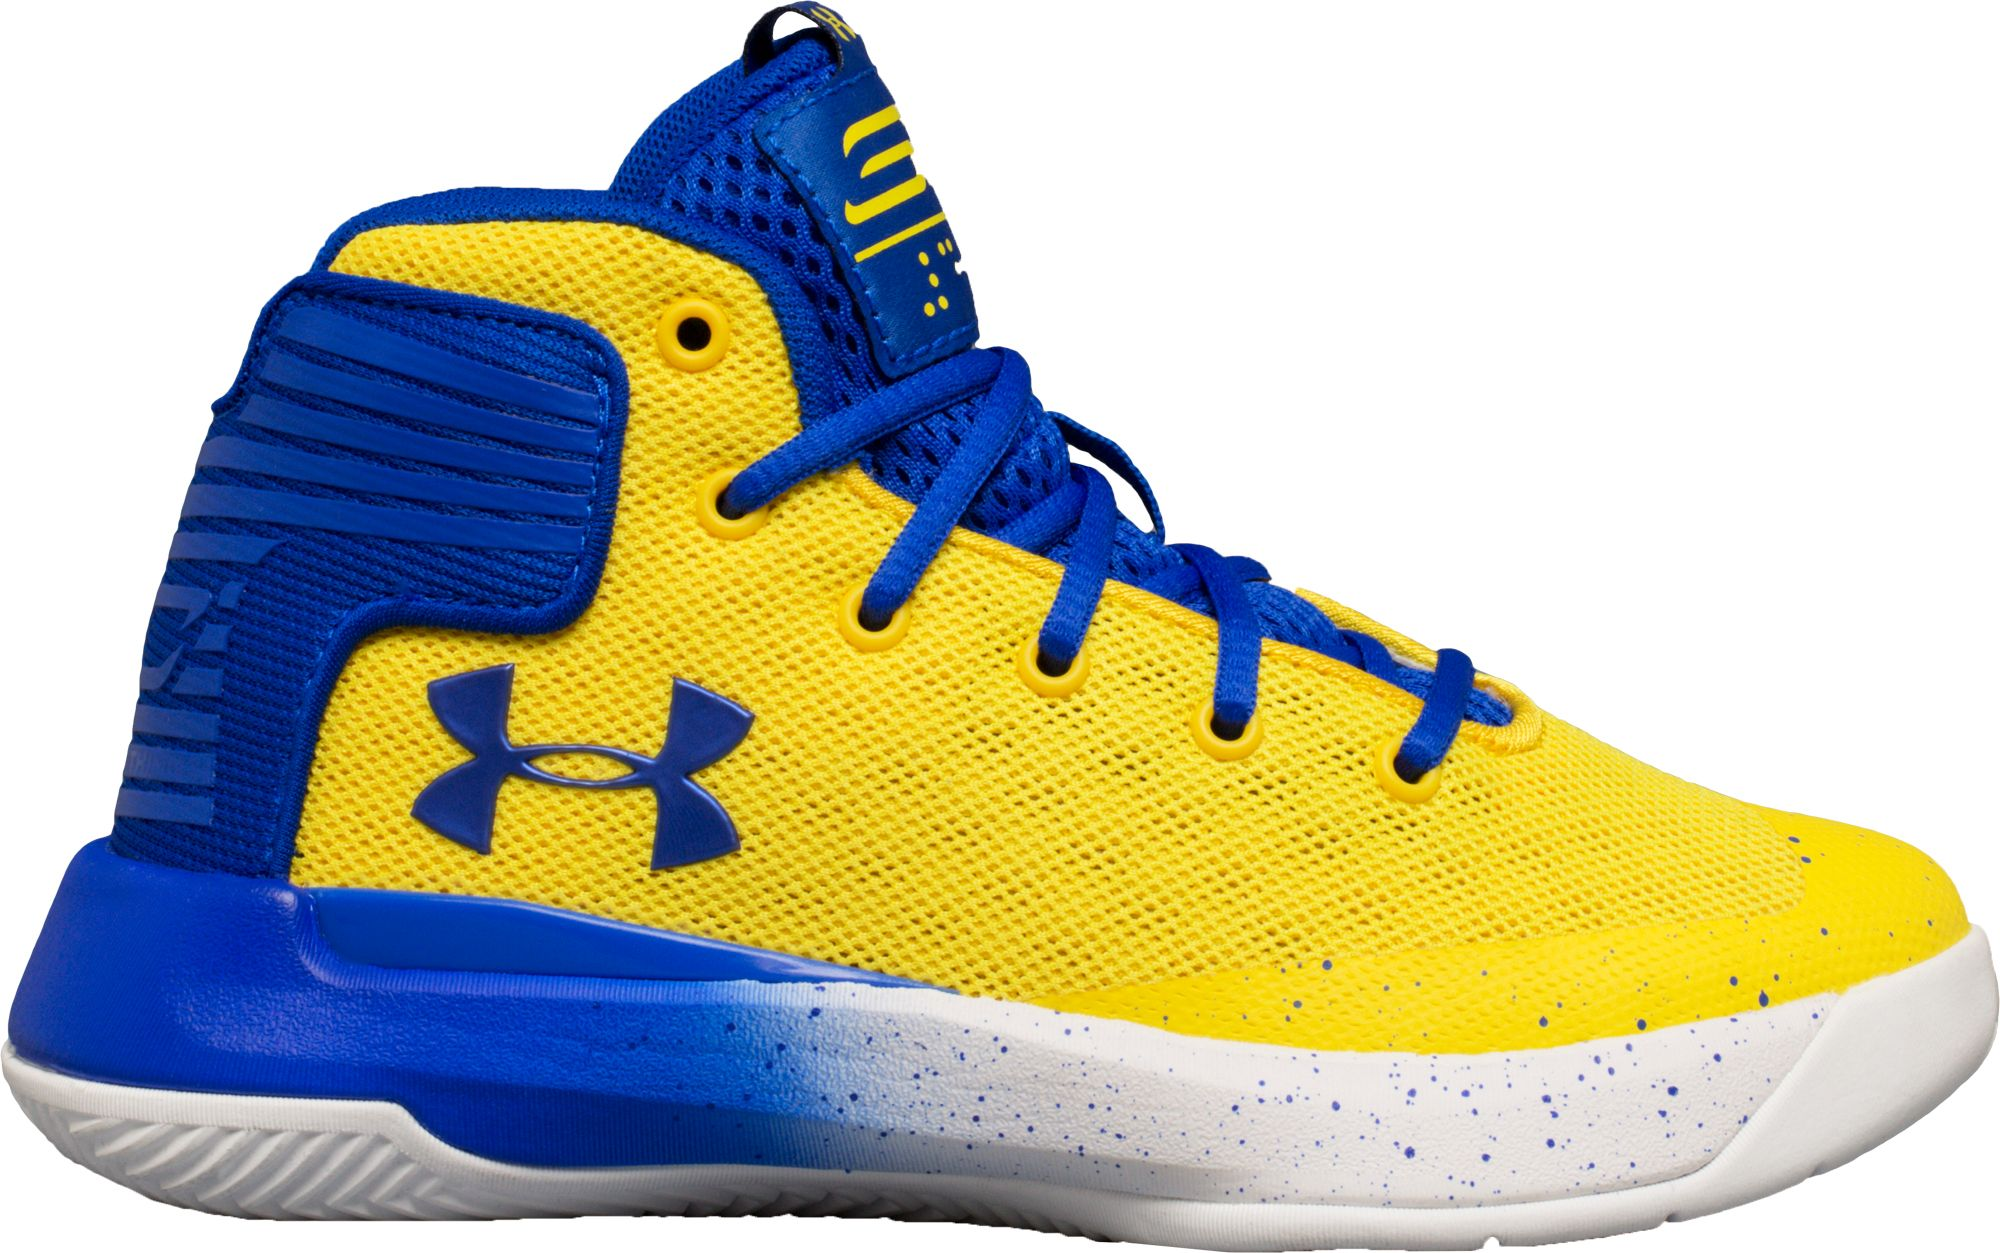 Under Armour Unveils Curry 4